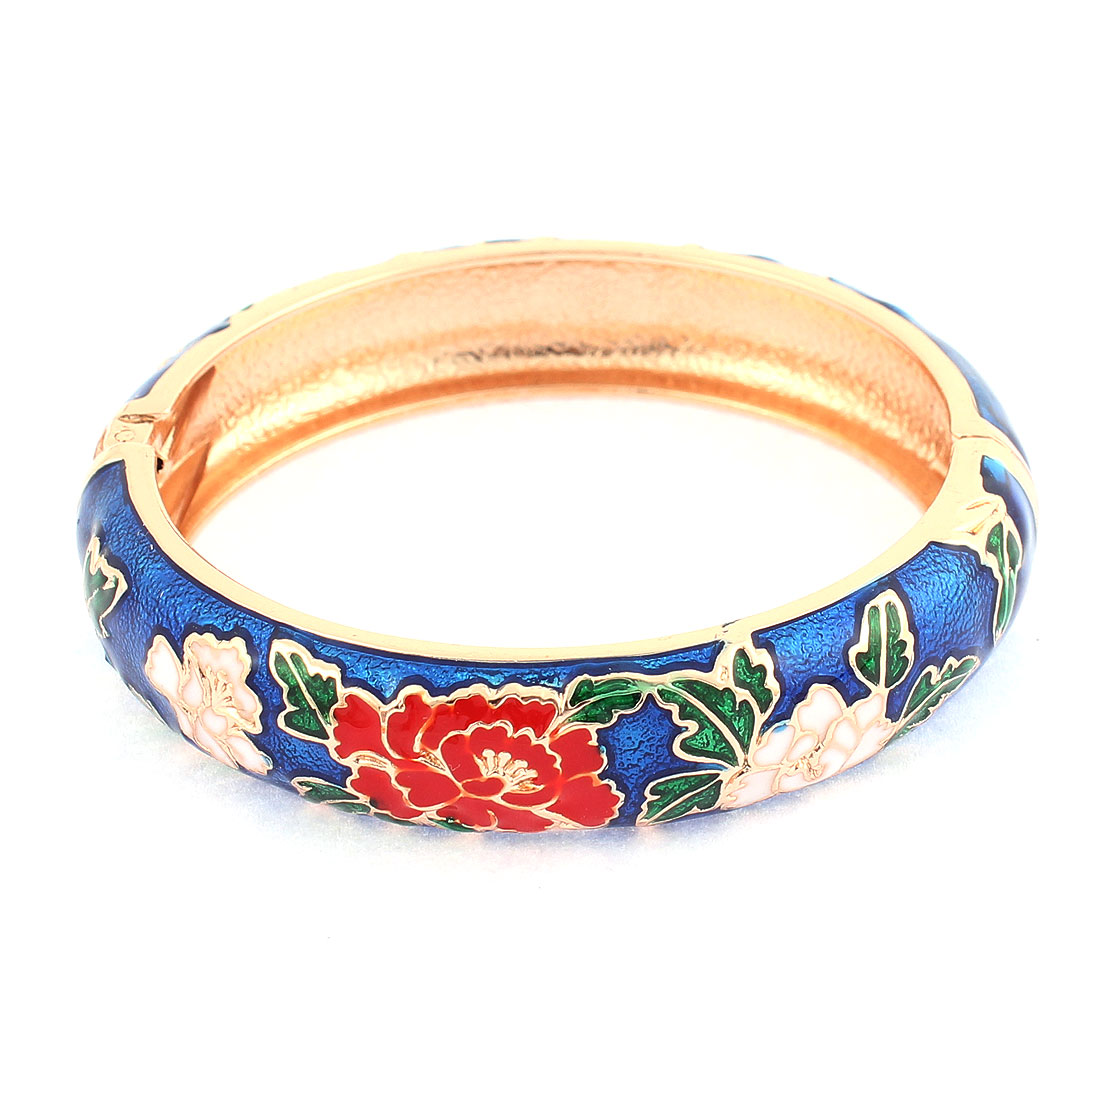 Lady Spring Closure Flower Enamel Round Bracelet Bangle Jewelry Gift Blue